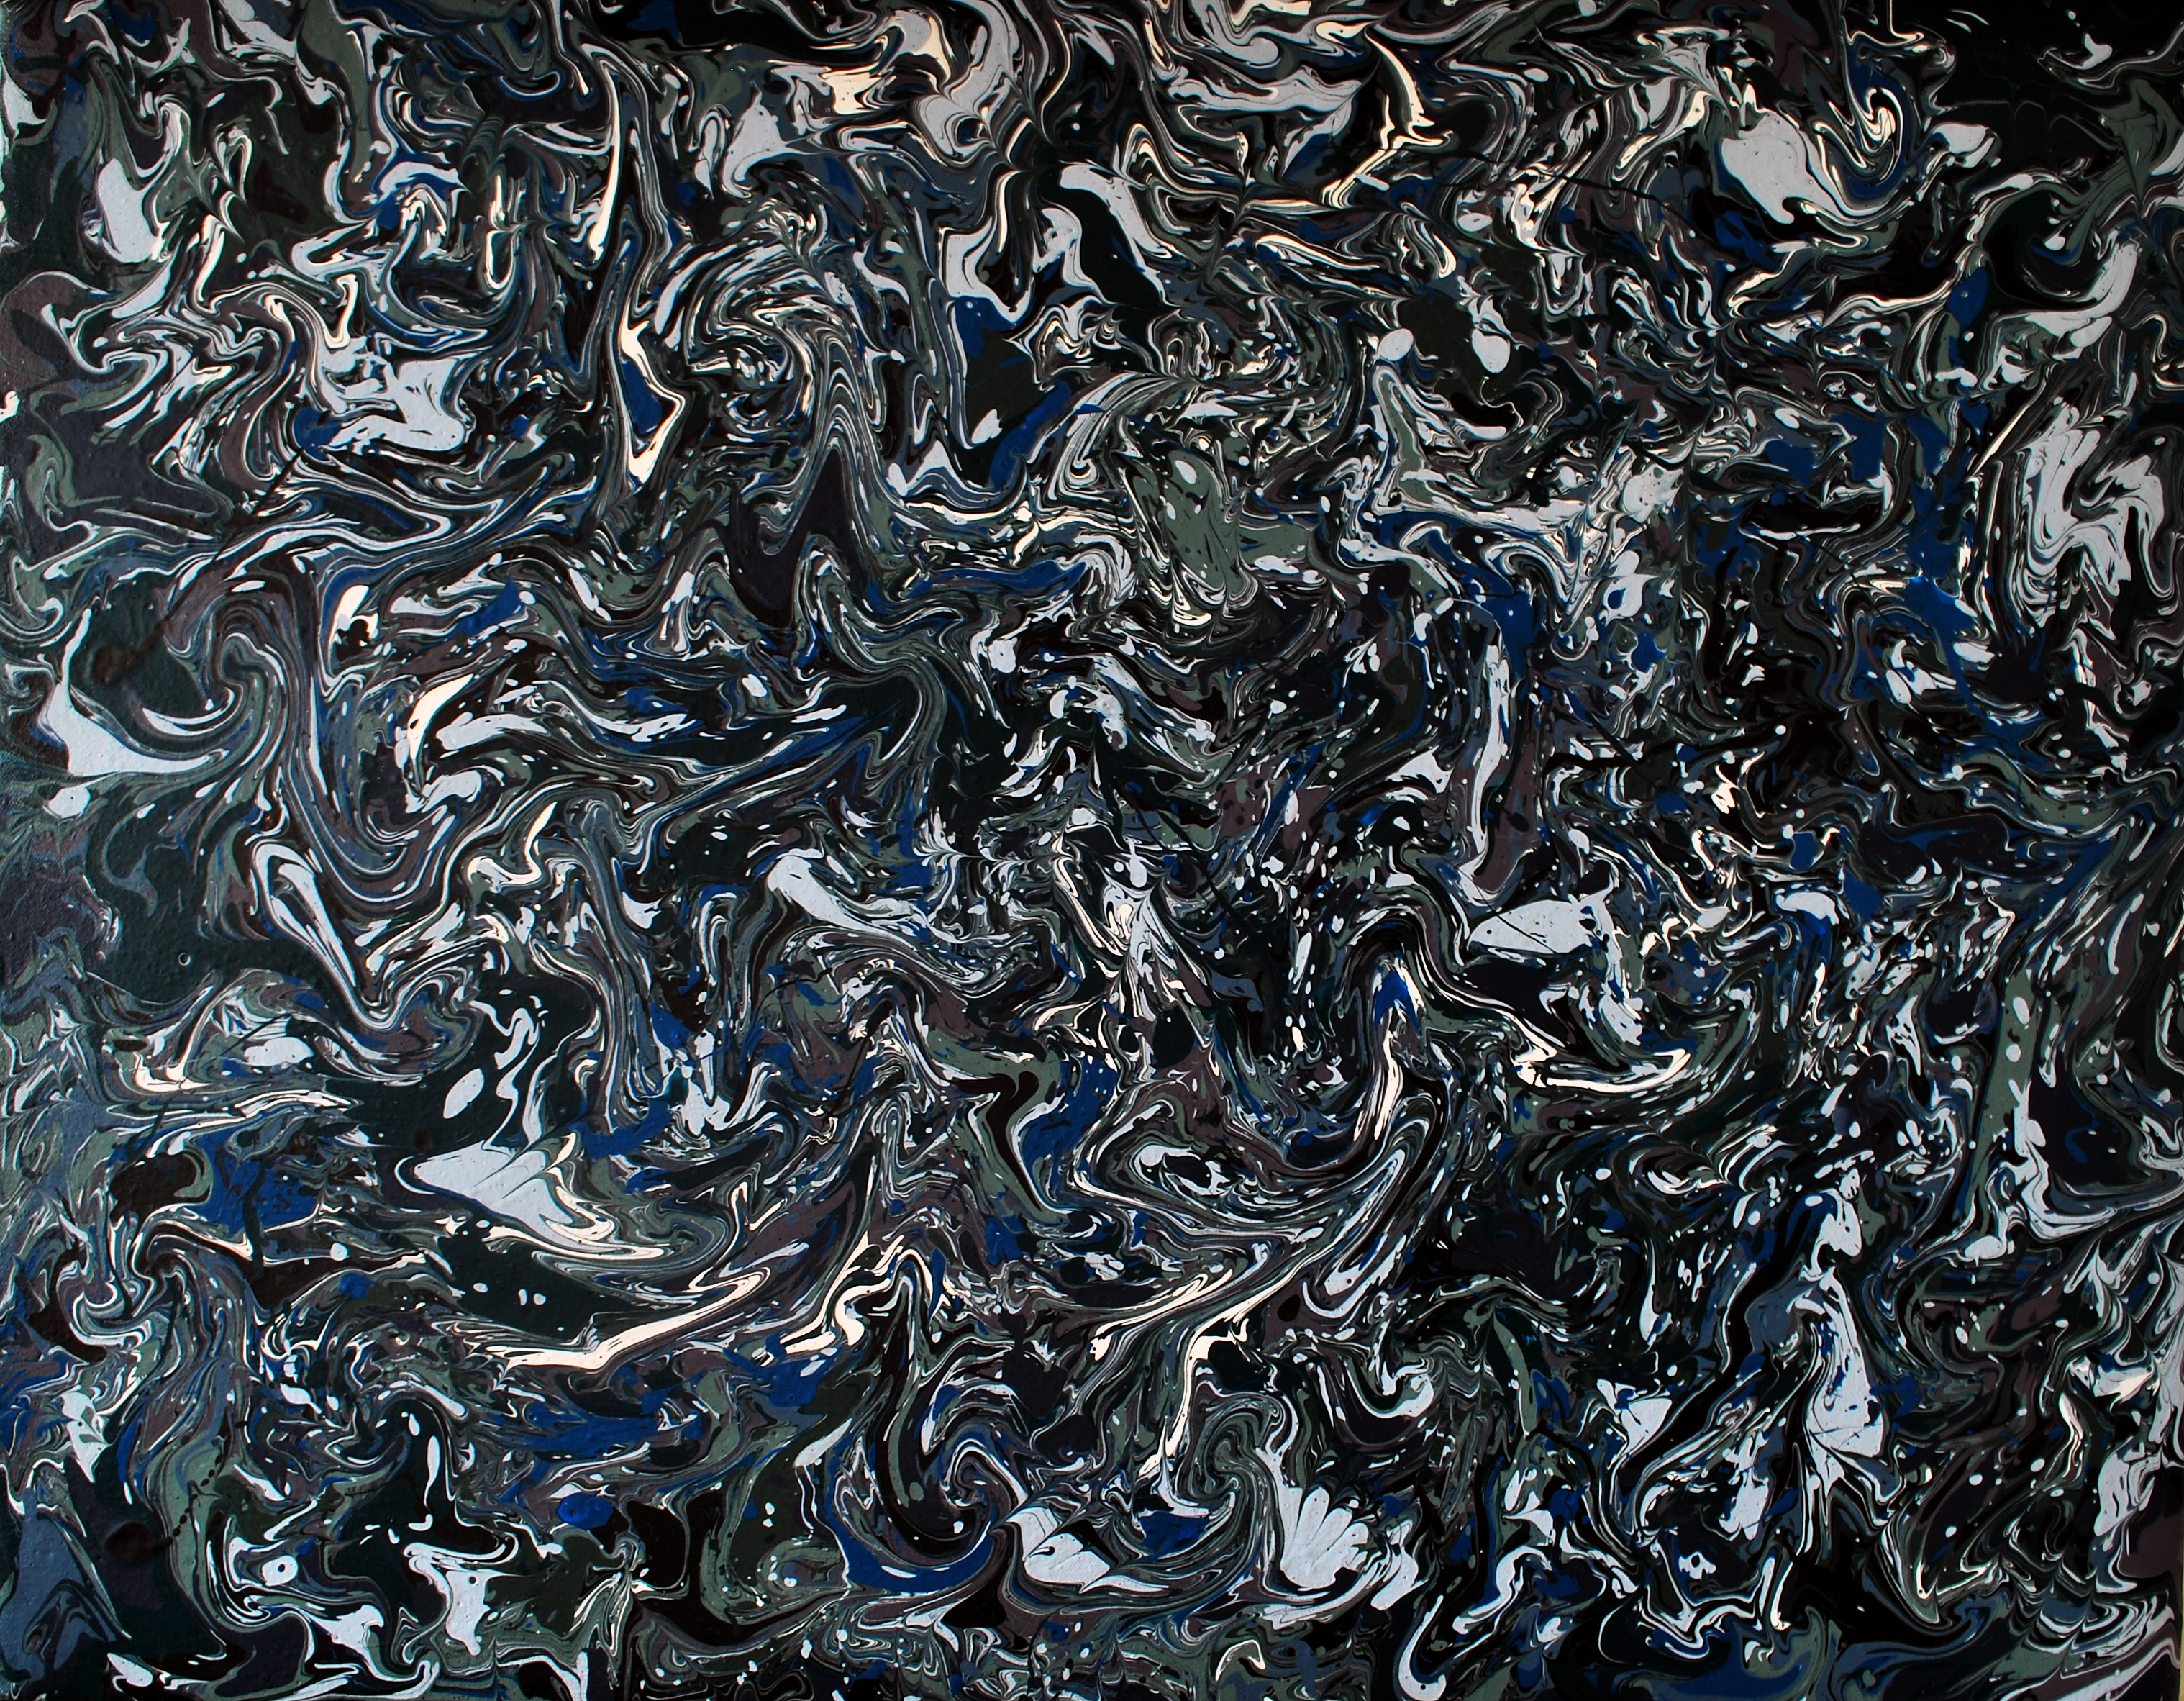 Metallics - Abstract Drip Painting By Phil Connor